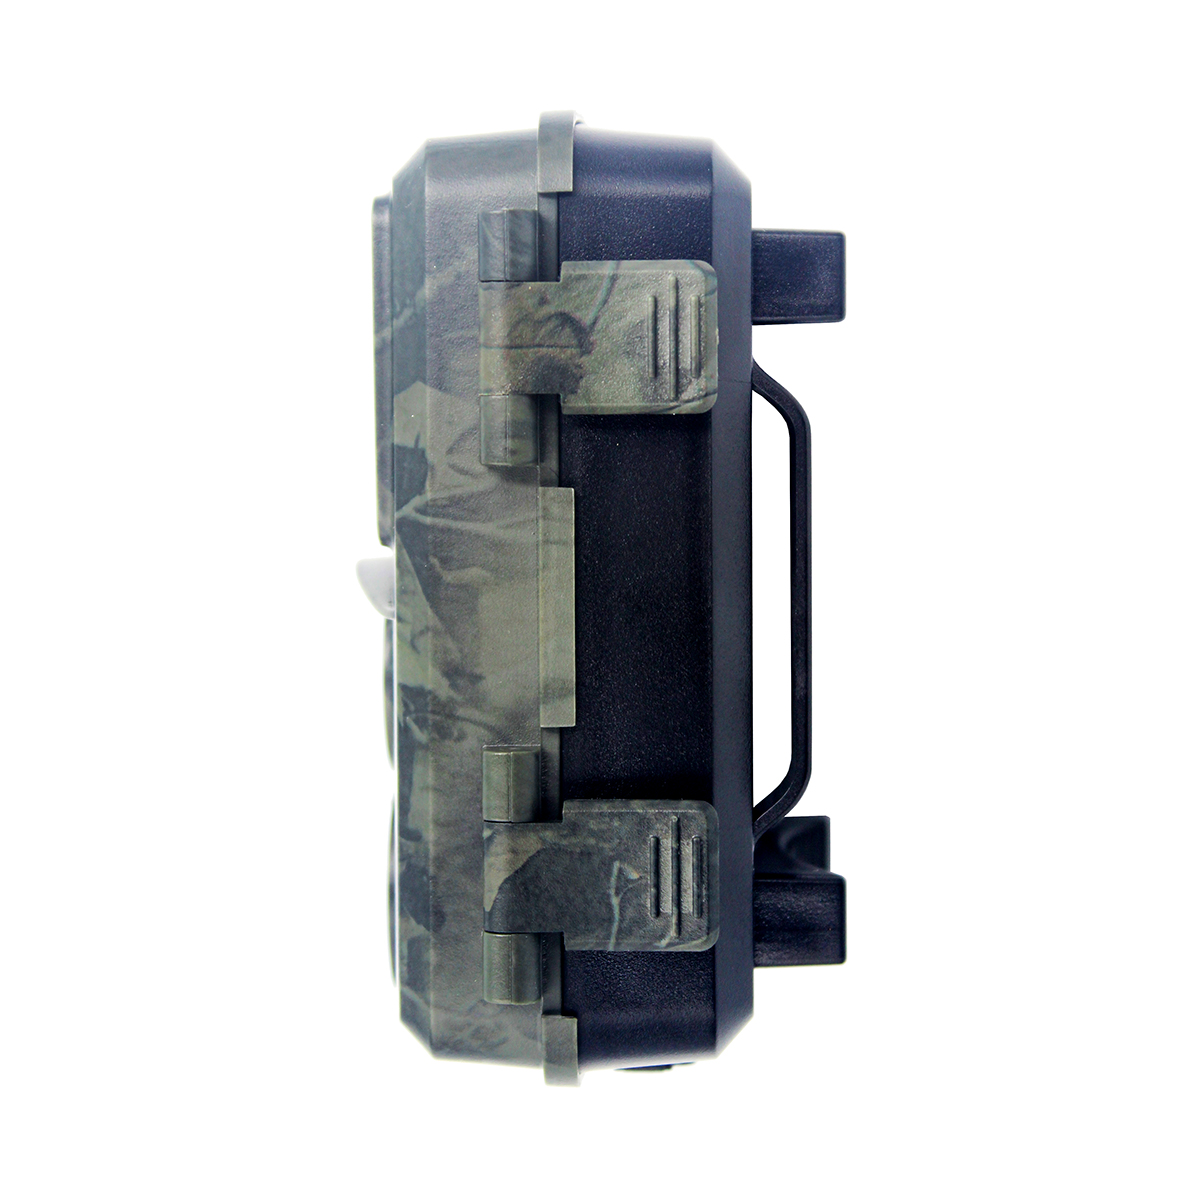 PR600A 12MP 1080P Night Vision Waterproof Hunting Camera 0.8s Trigger Time Recorder Wildlife Trail Camera for Home Security and Wildlife Monitoring